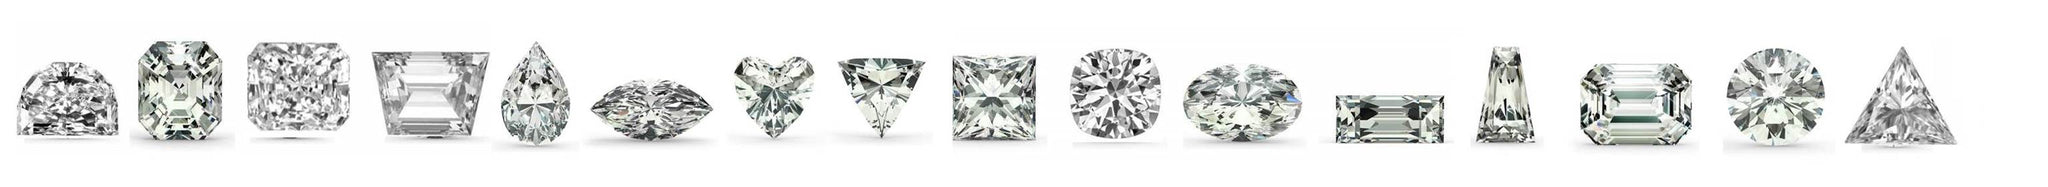 highest quality 5A AAAAA cubic zirconia stones from cubiczirconia.com